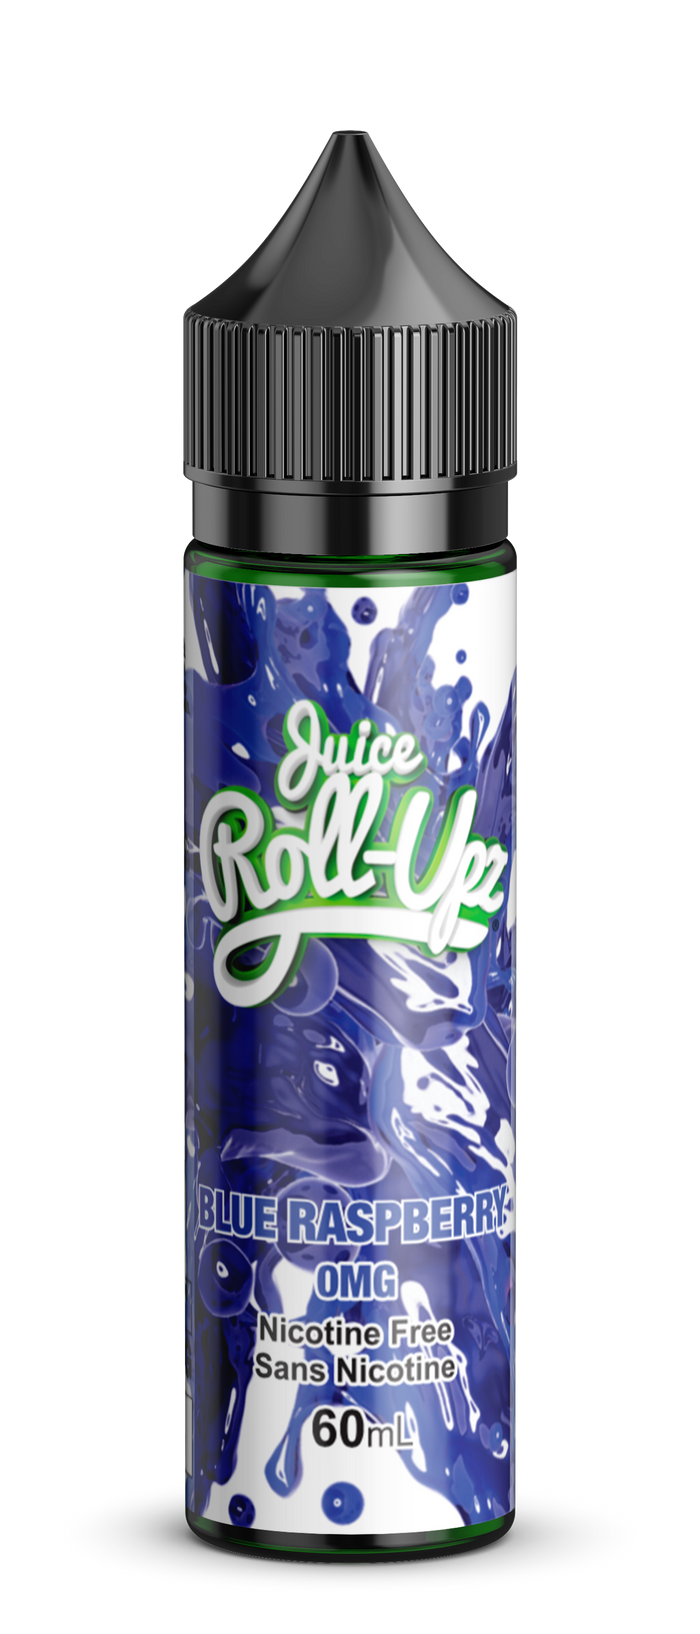 ROLL UPZ - BUY 3 GET 1 FREE